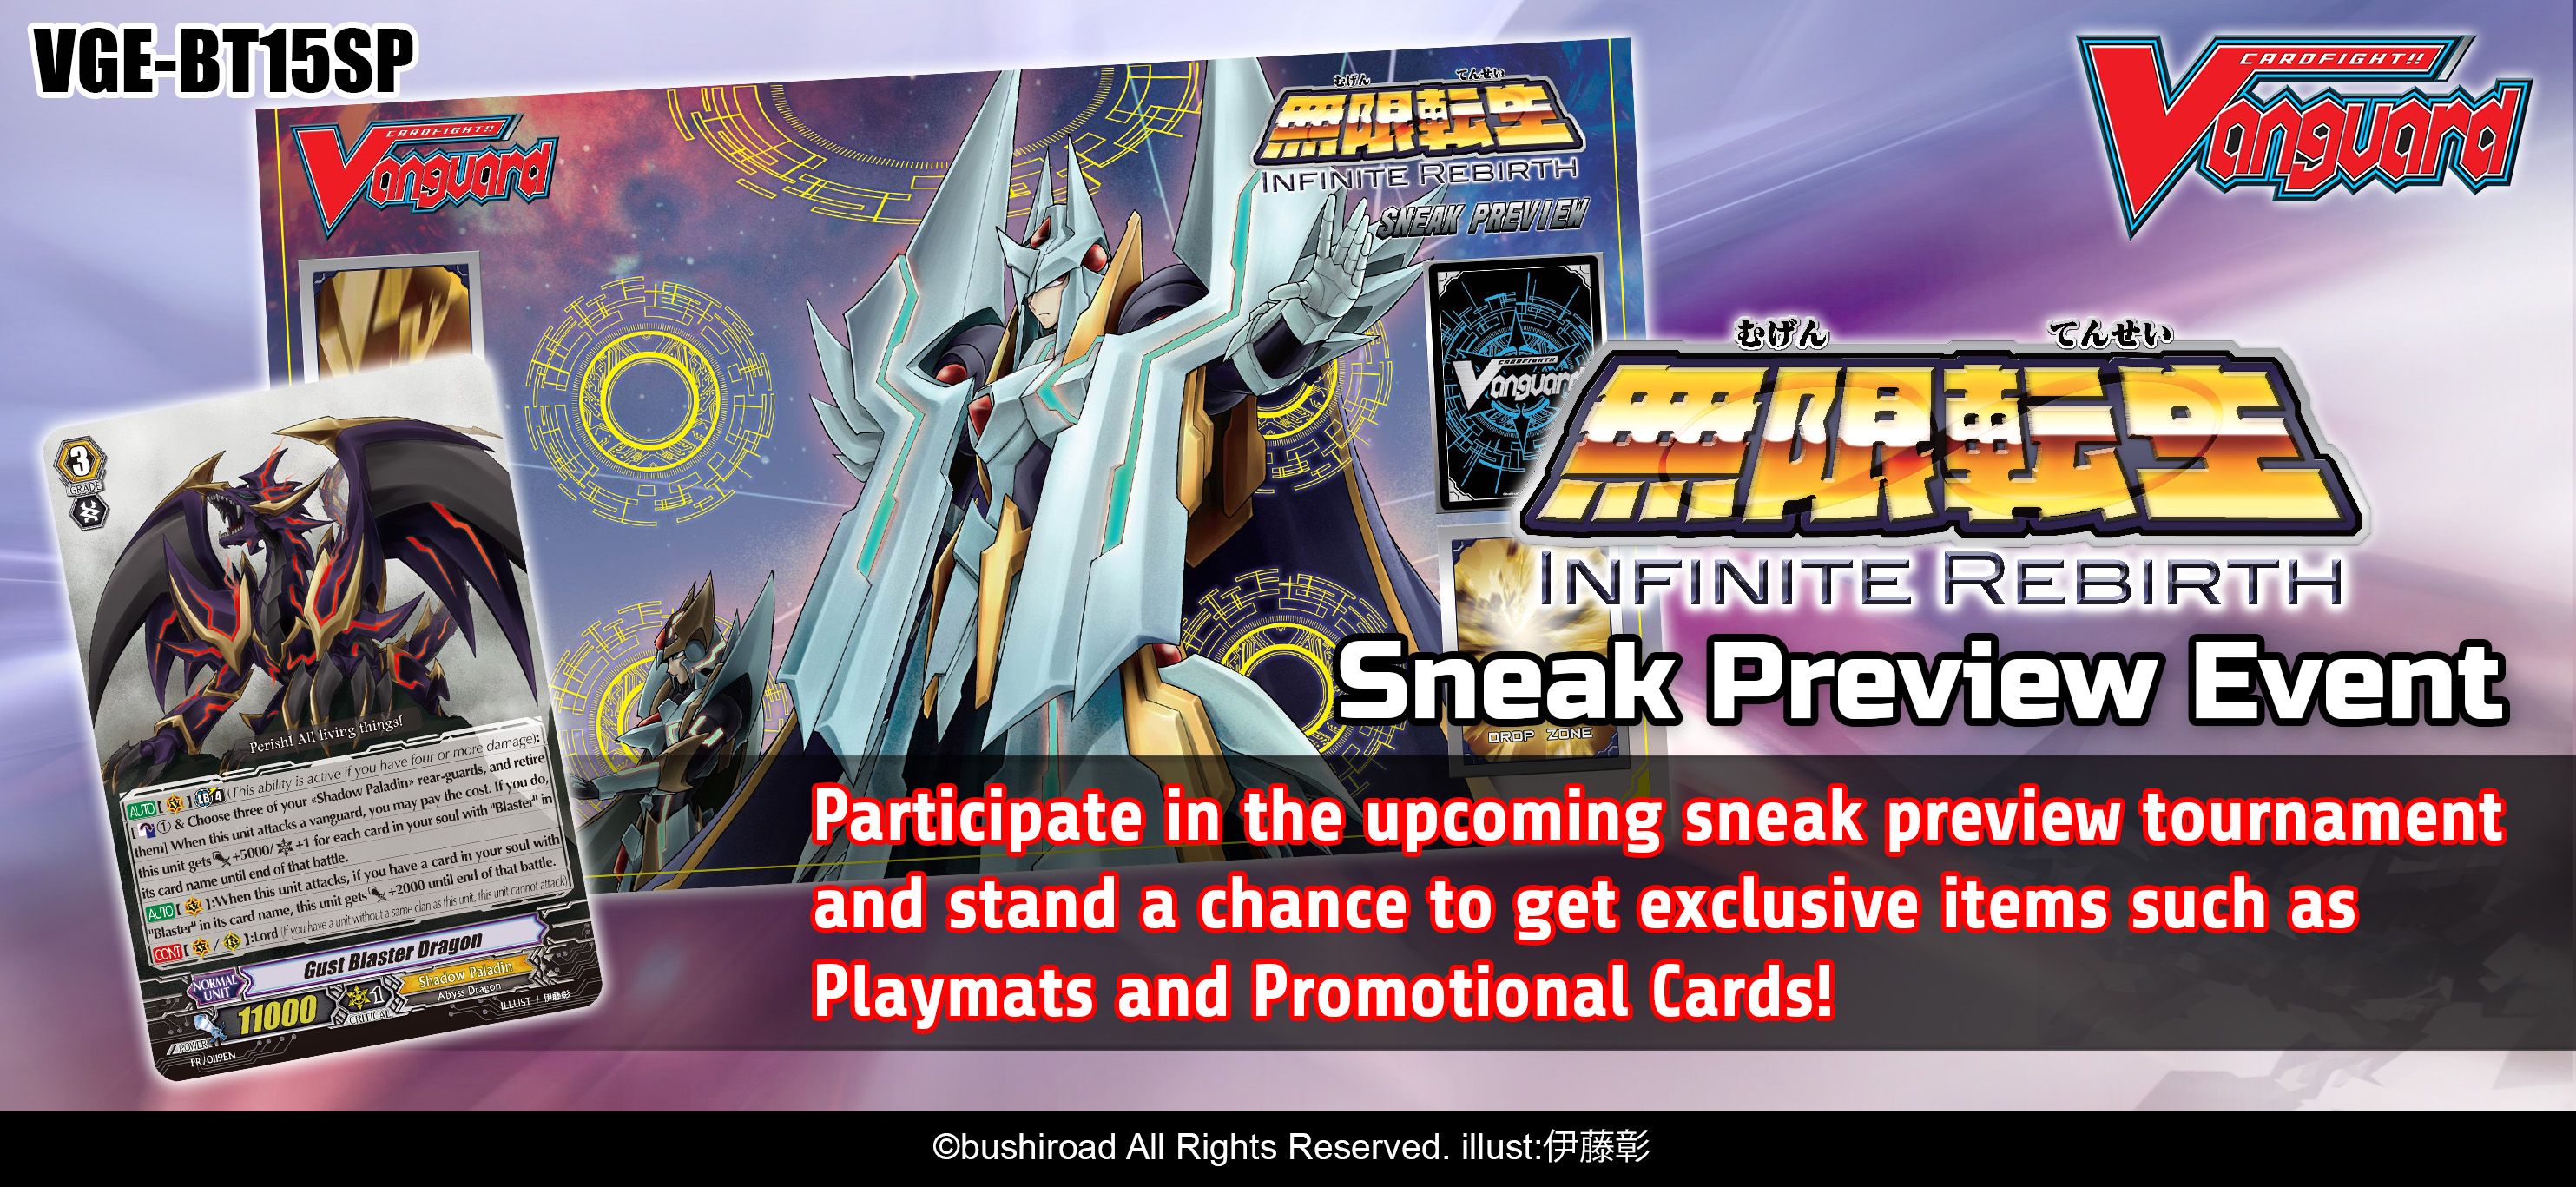 Booster Pack Vol. 15 Sneak Preview Events from Sep 12 to Sep 14!